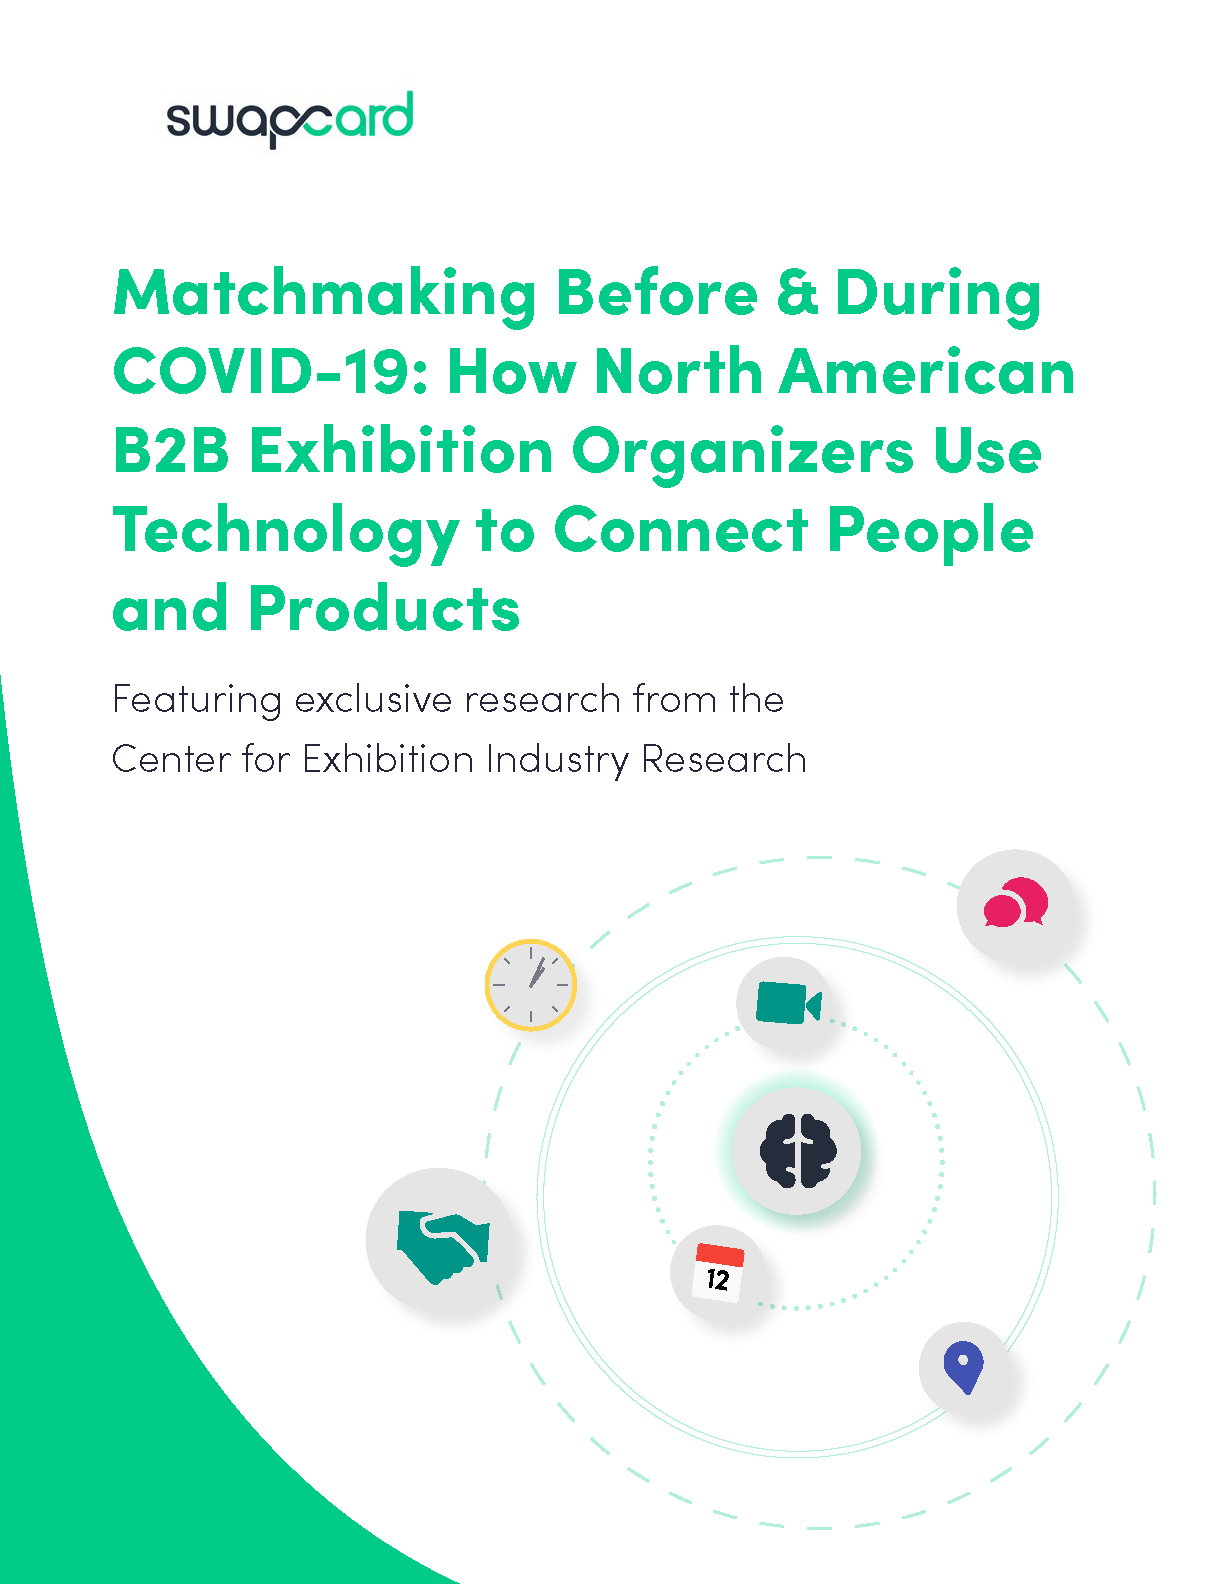 Matchmaking Before & During COVID-19: How North American B2B Exhibition Organizers Use Technology to Connect People and Products